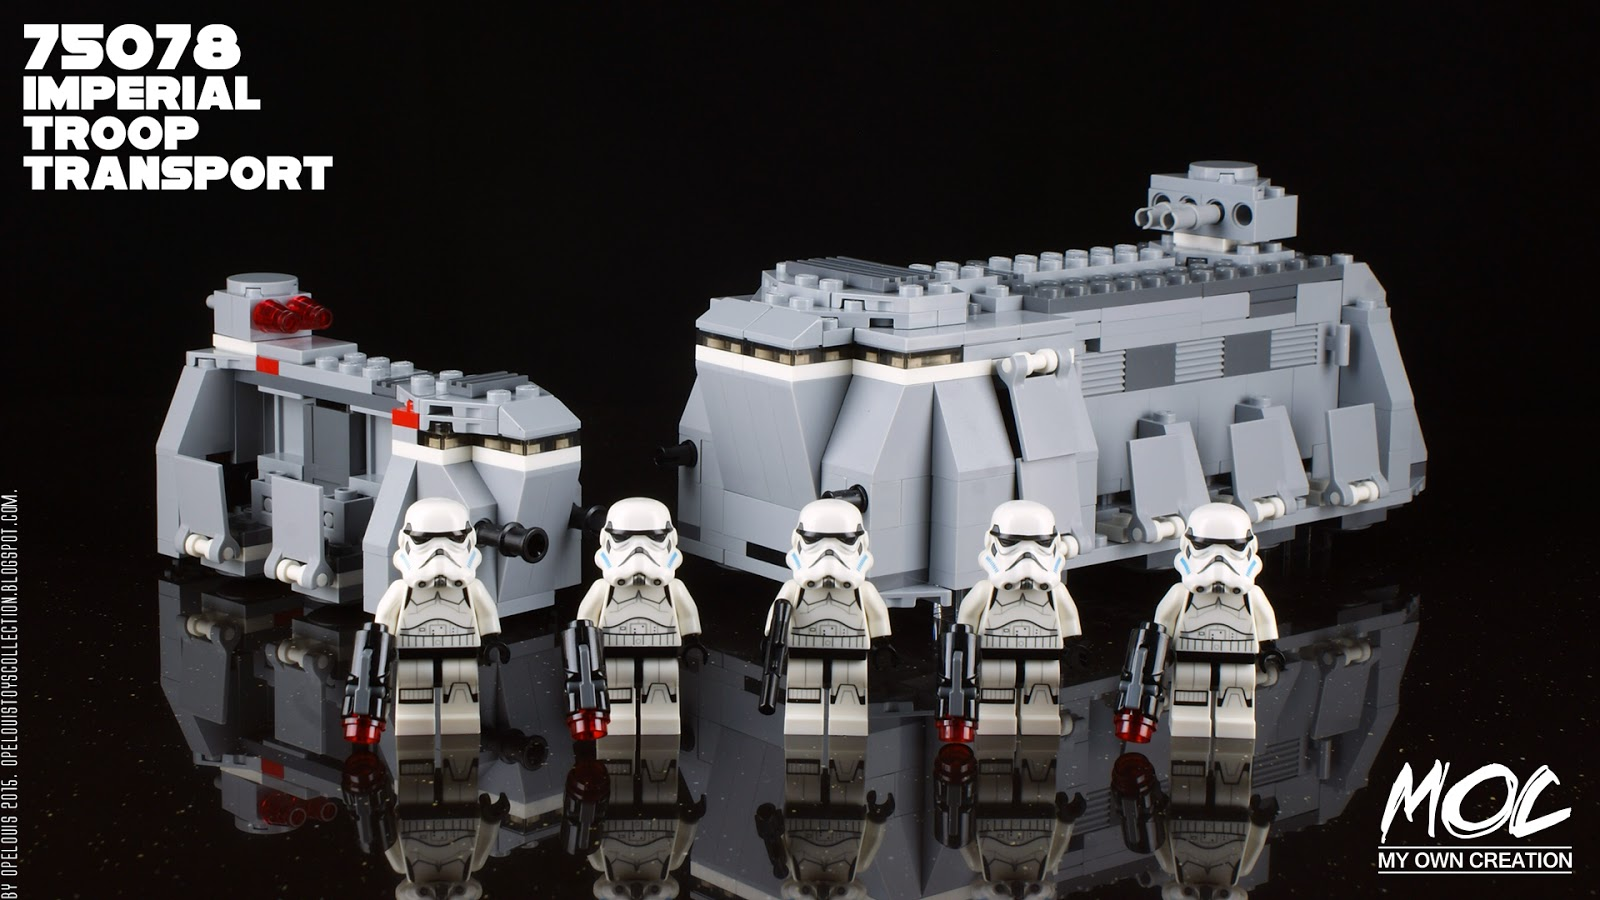 Opelouis 39 s toys collection lego moc star wars imperial troop transport ft 75078 itt updated